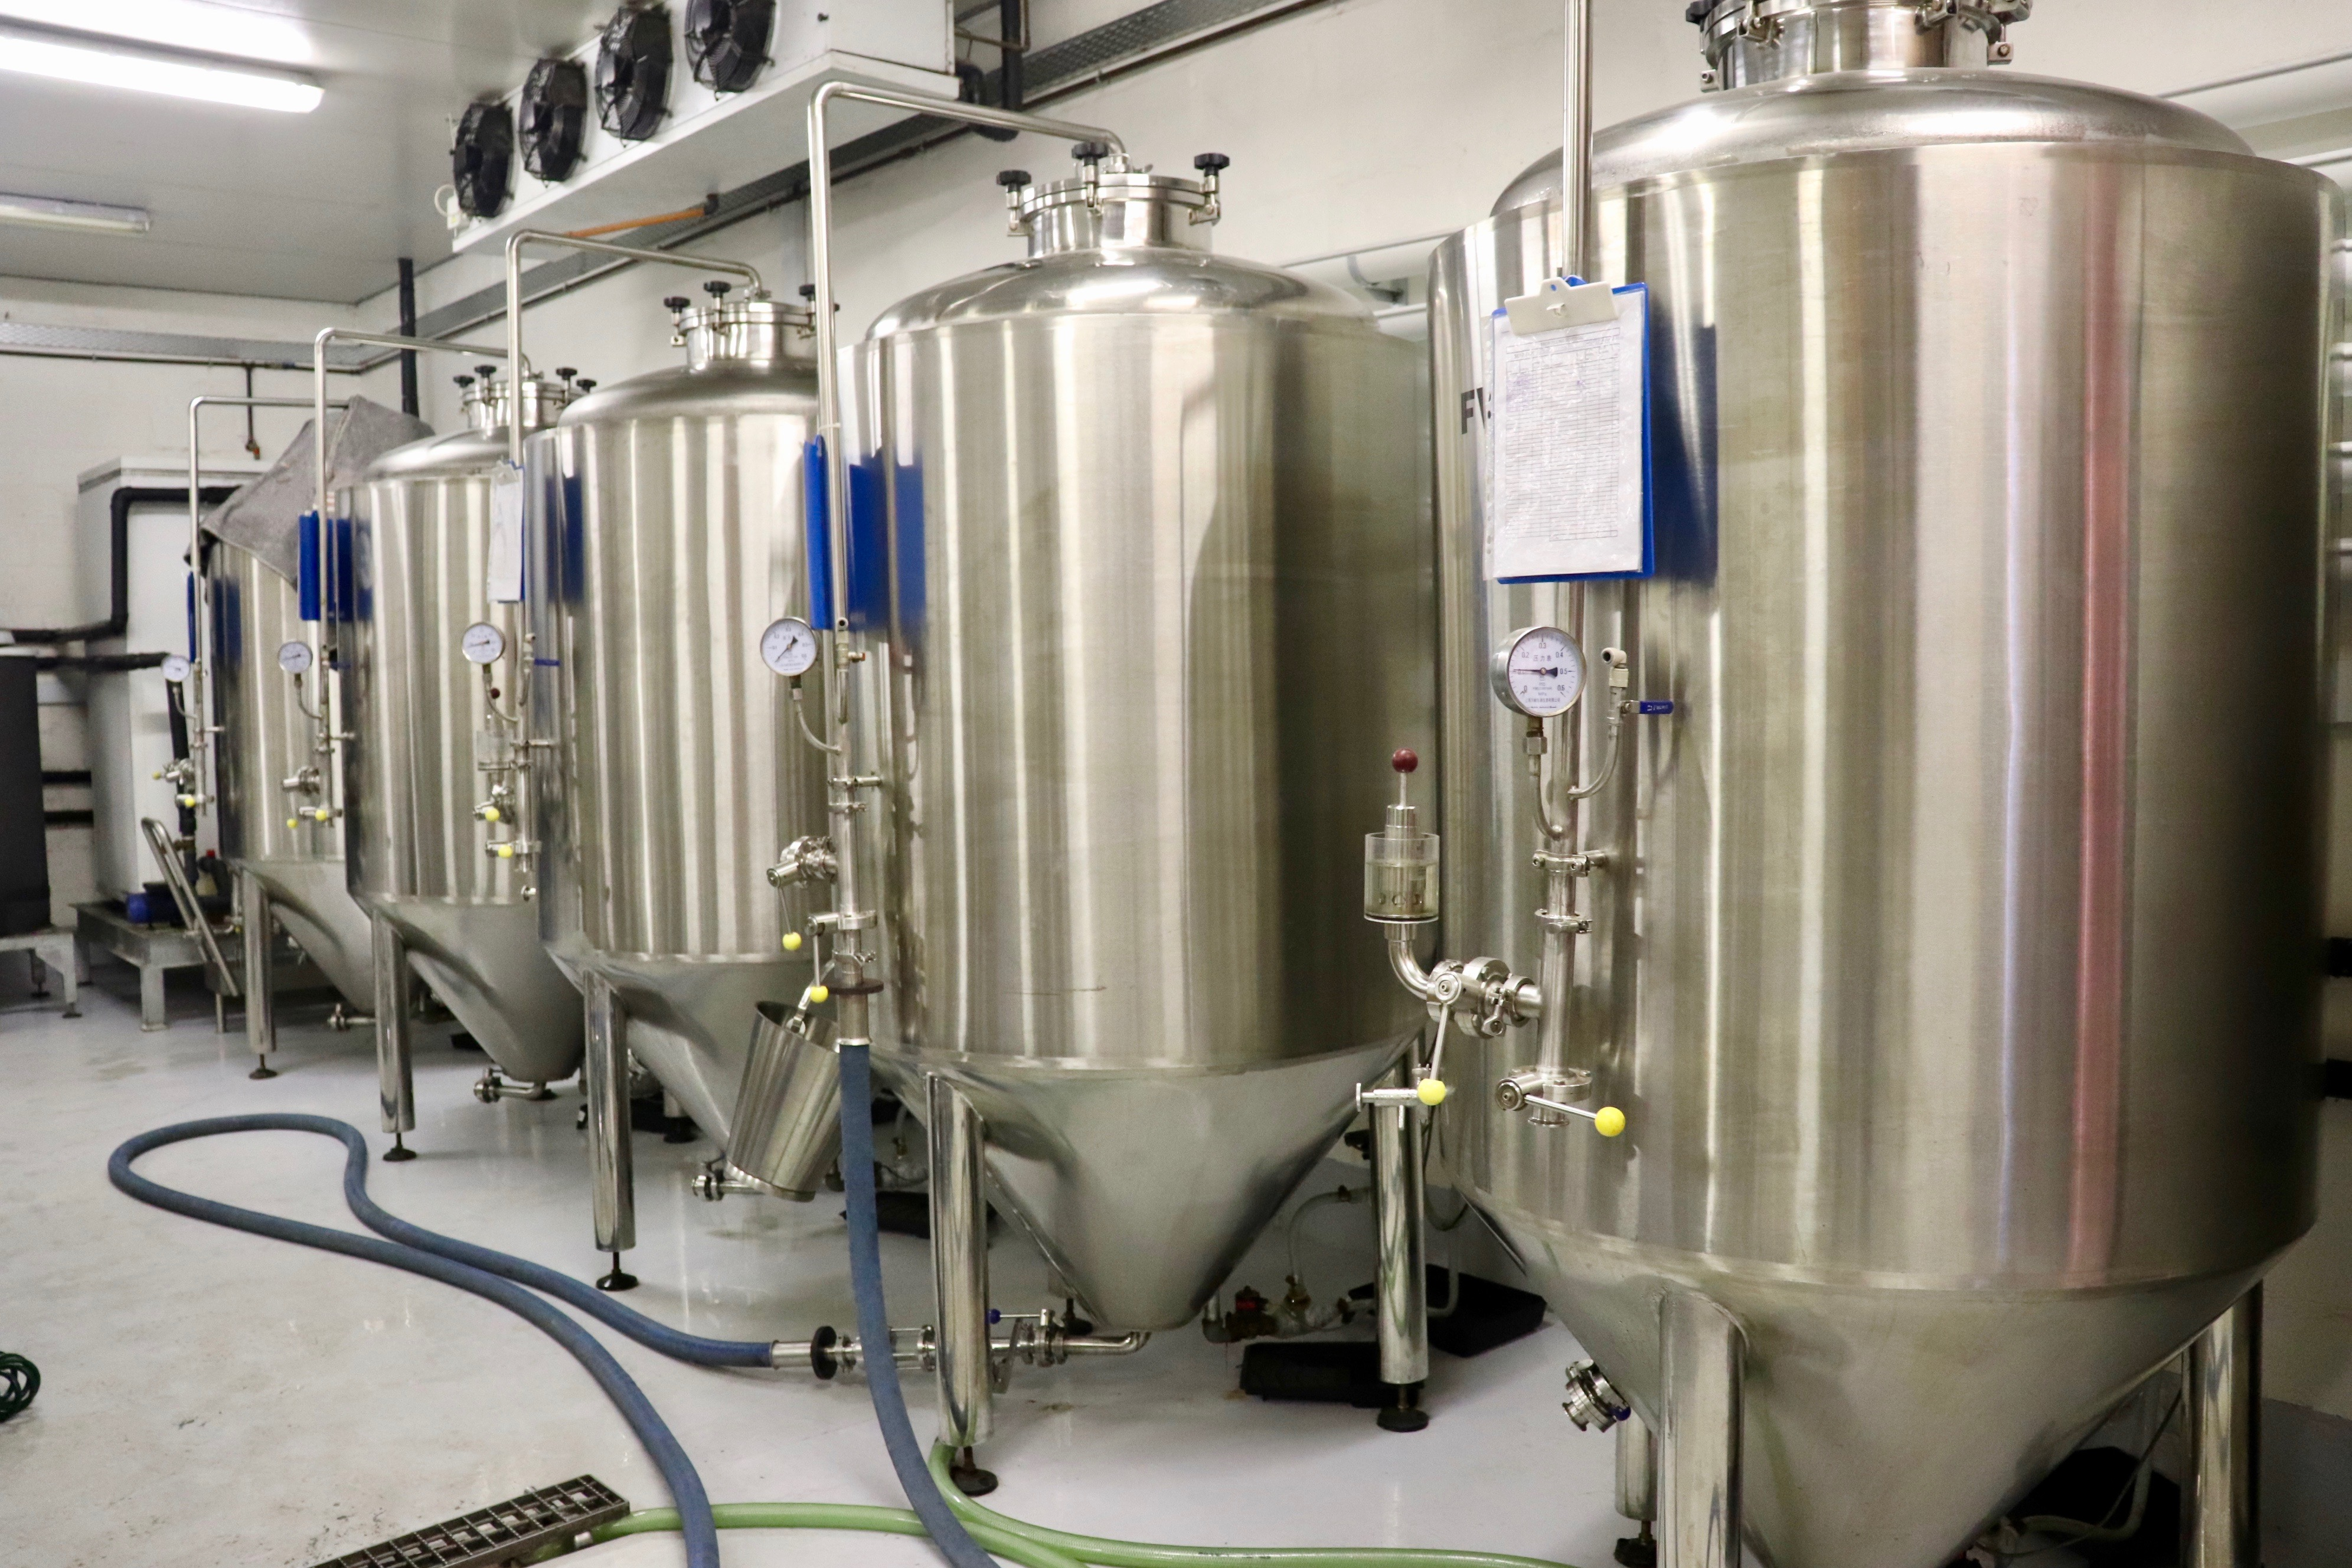 The Fermenting in the beer making process at berg river brewery